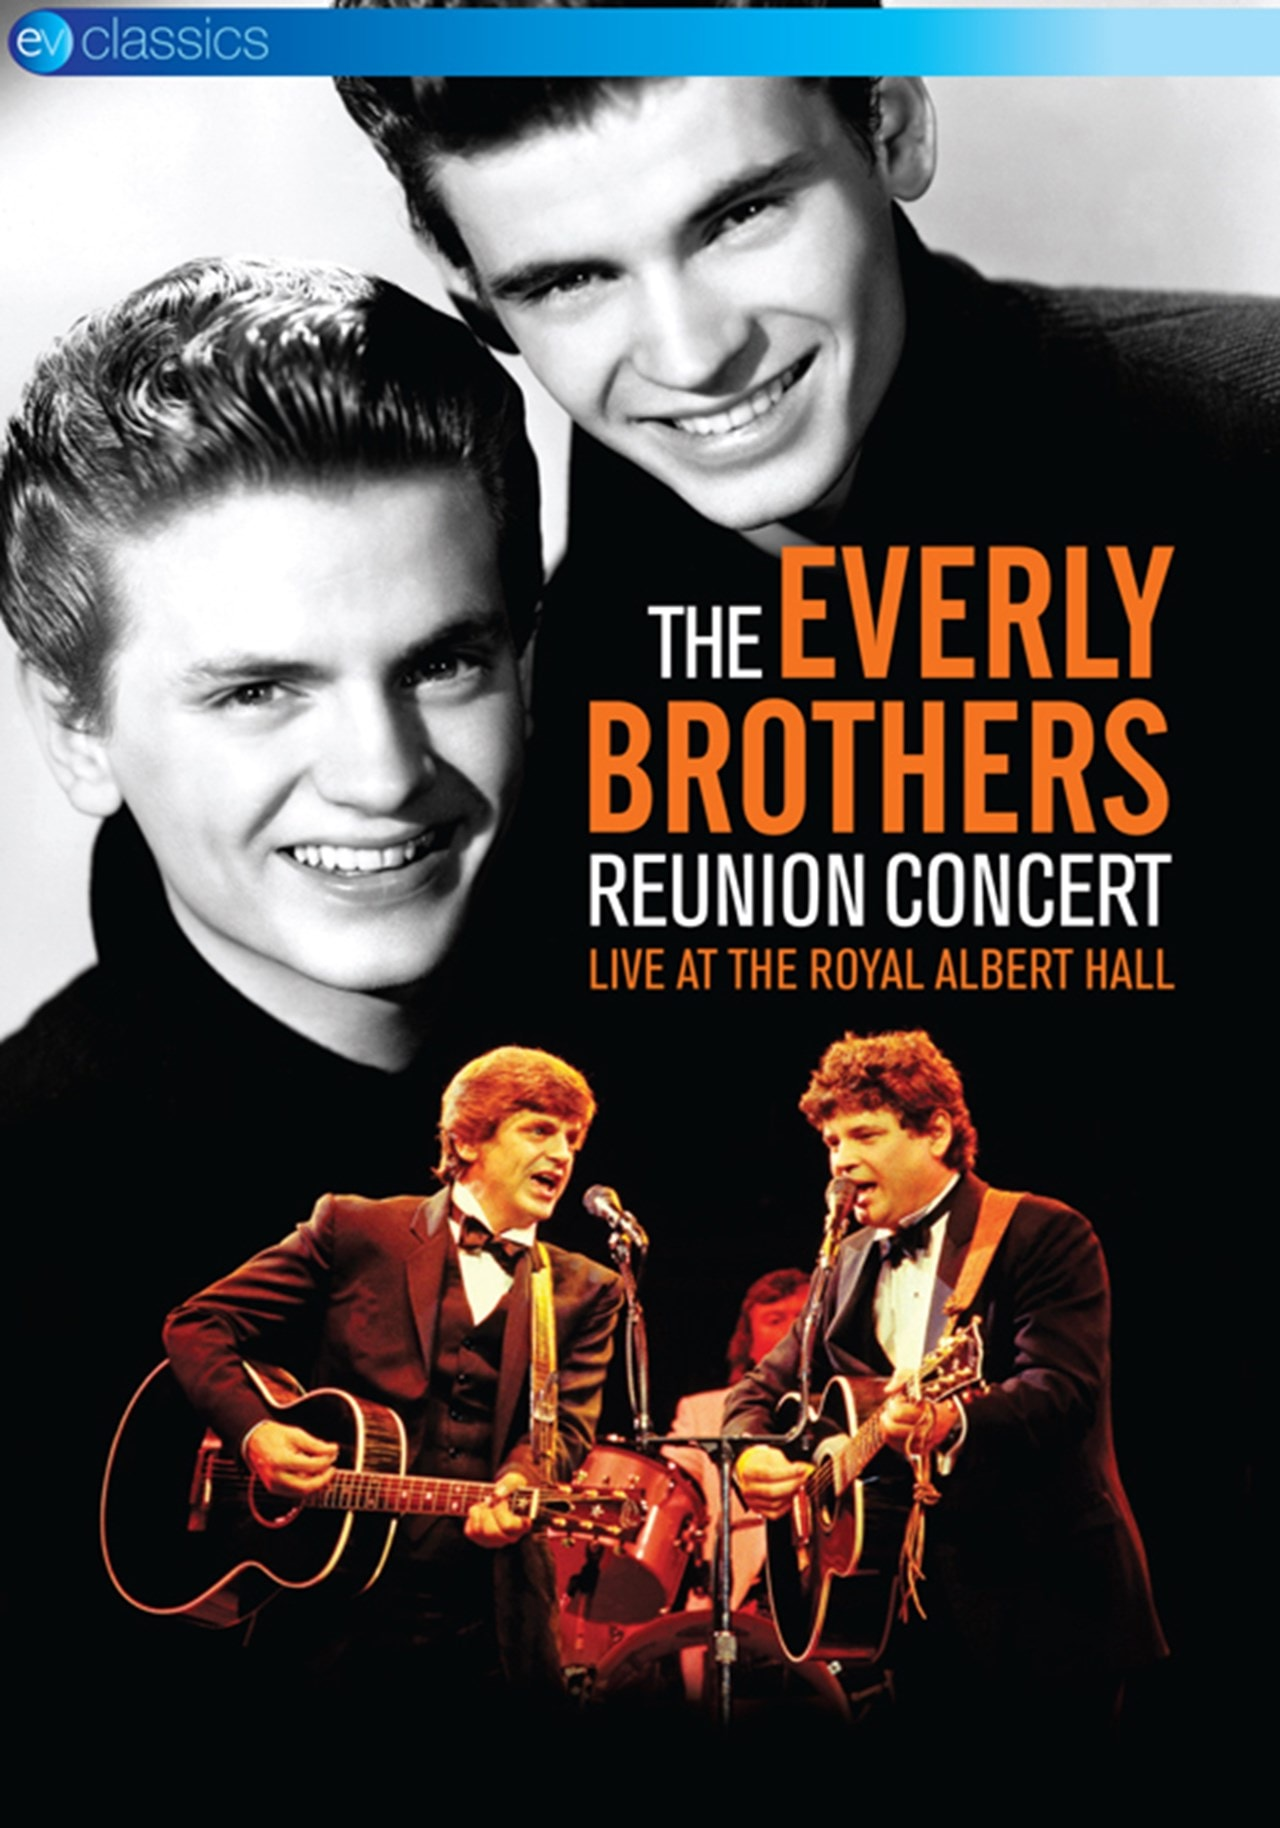 The Everly Brothers: Reunion Concert - Live at Royal Albert Hall - 1